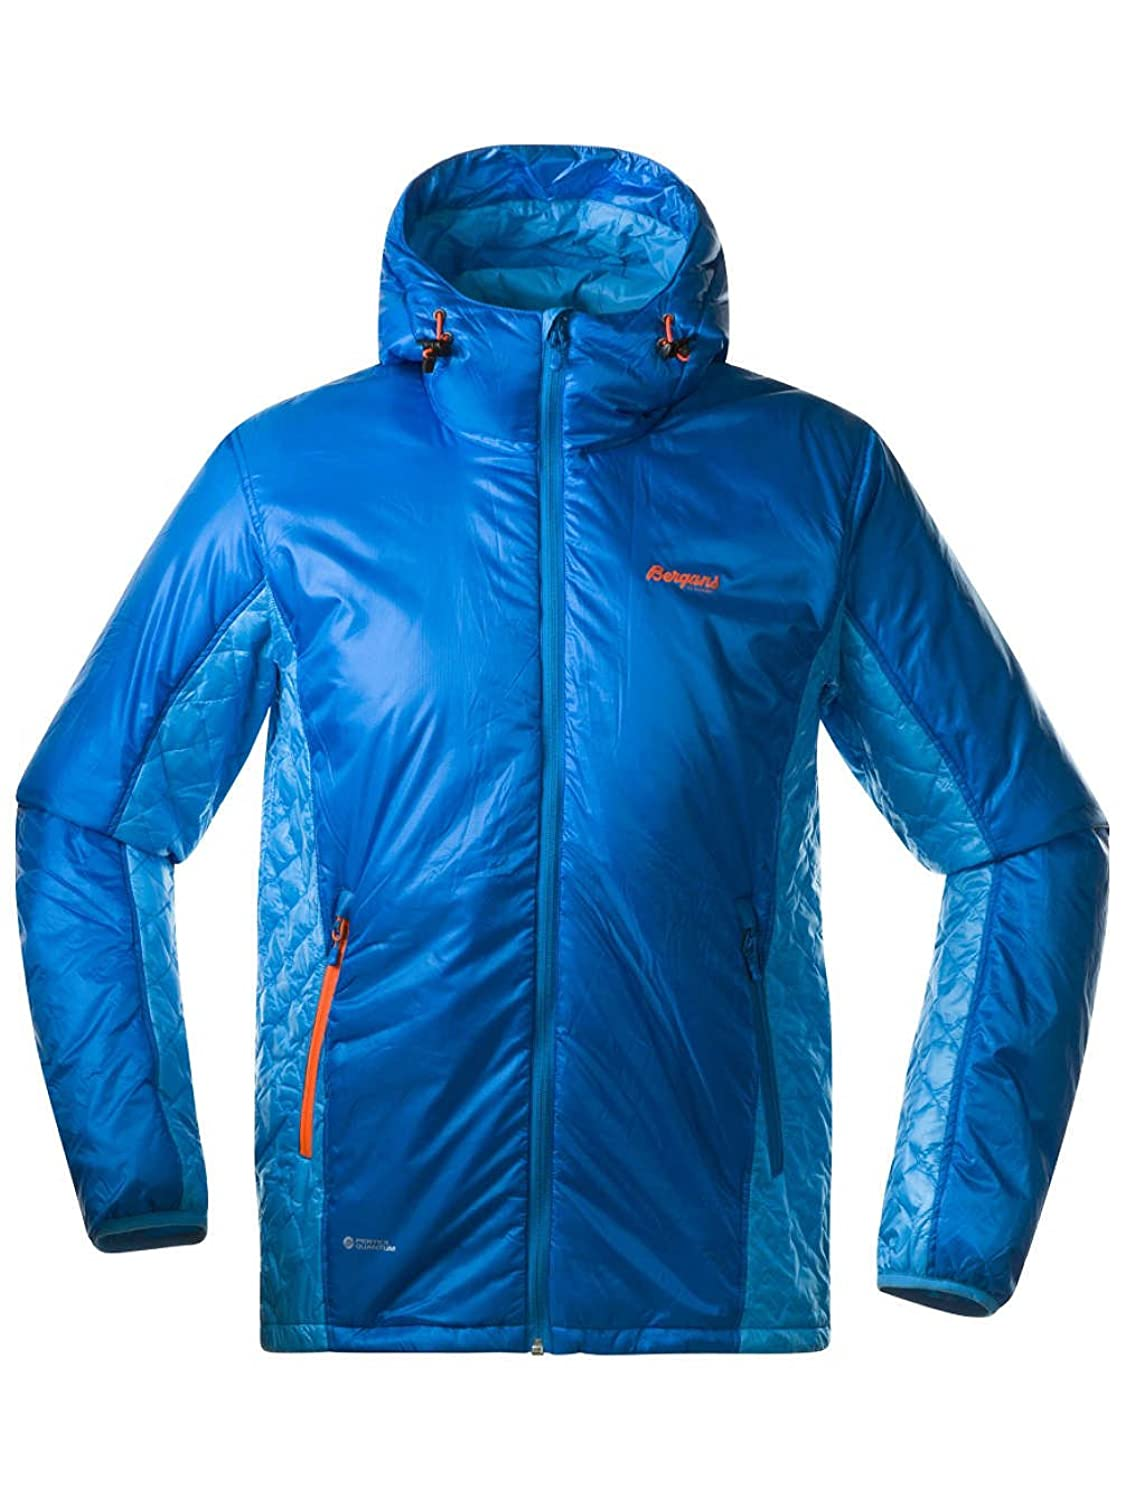 Bergans Slogen Light Ins Jkt M sea blue/br sea blue/neon orange 2014